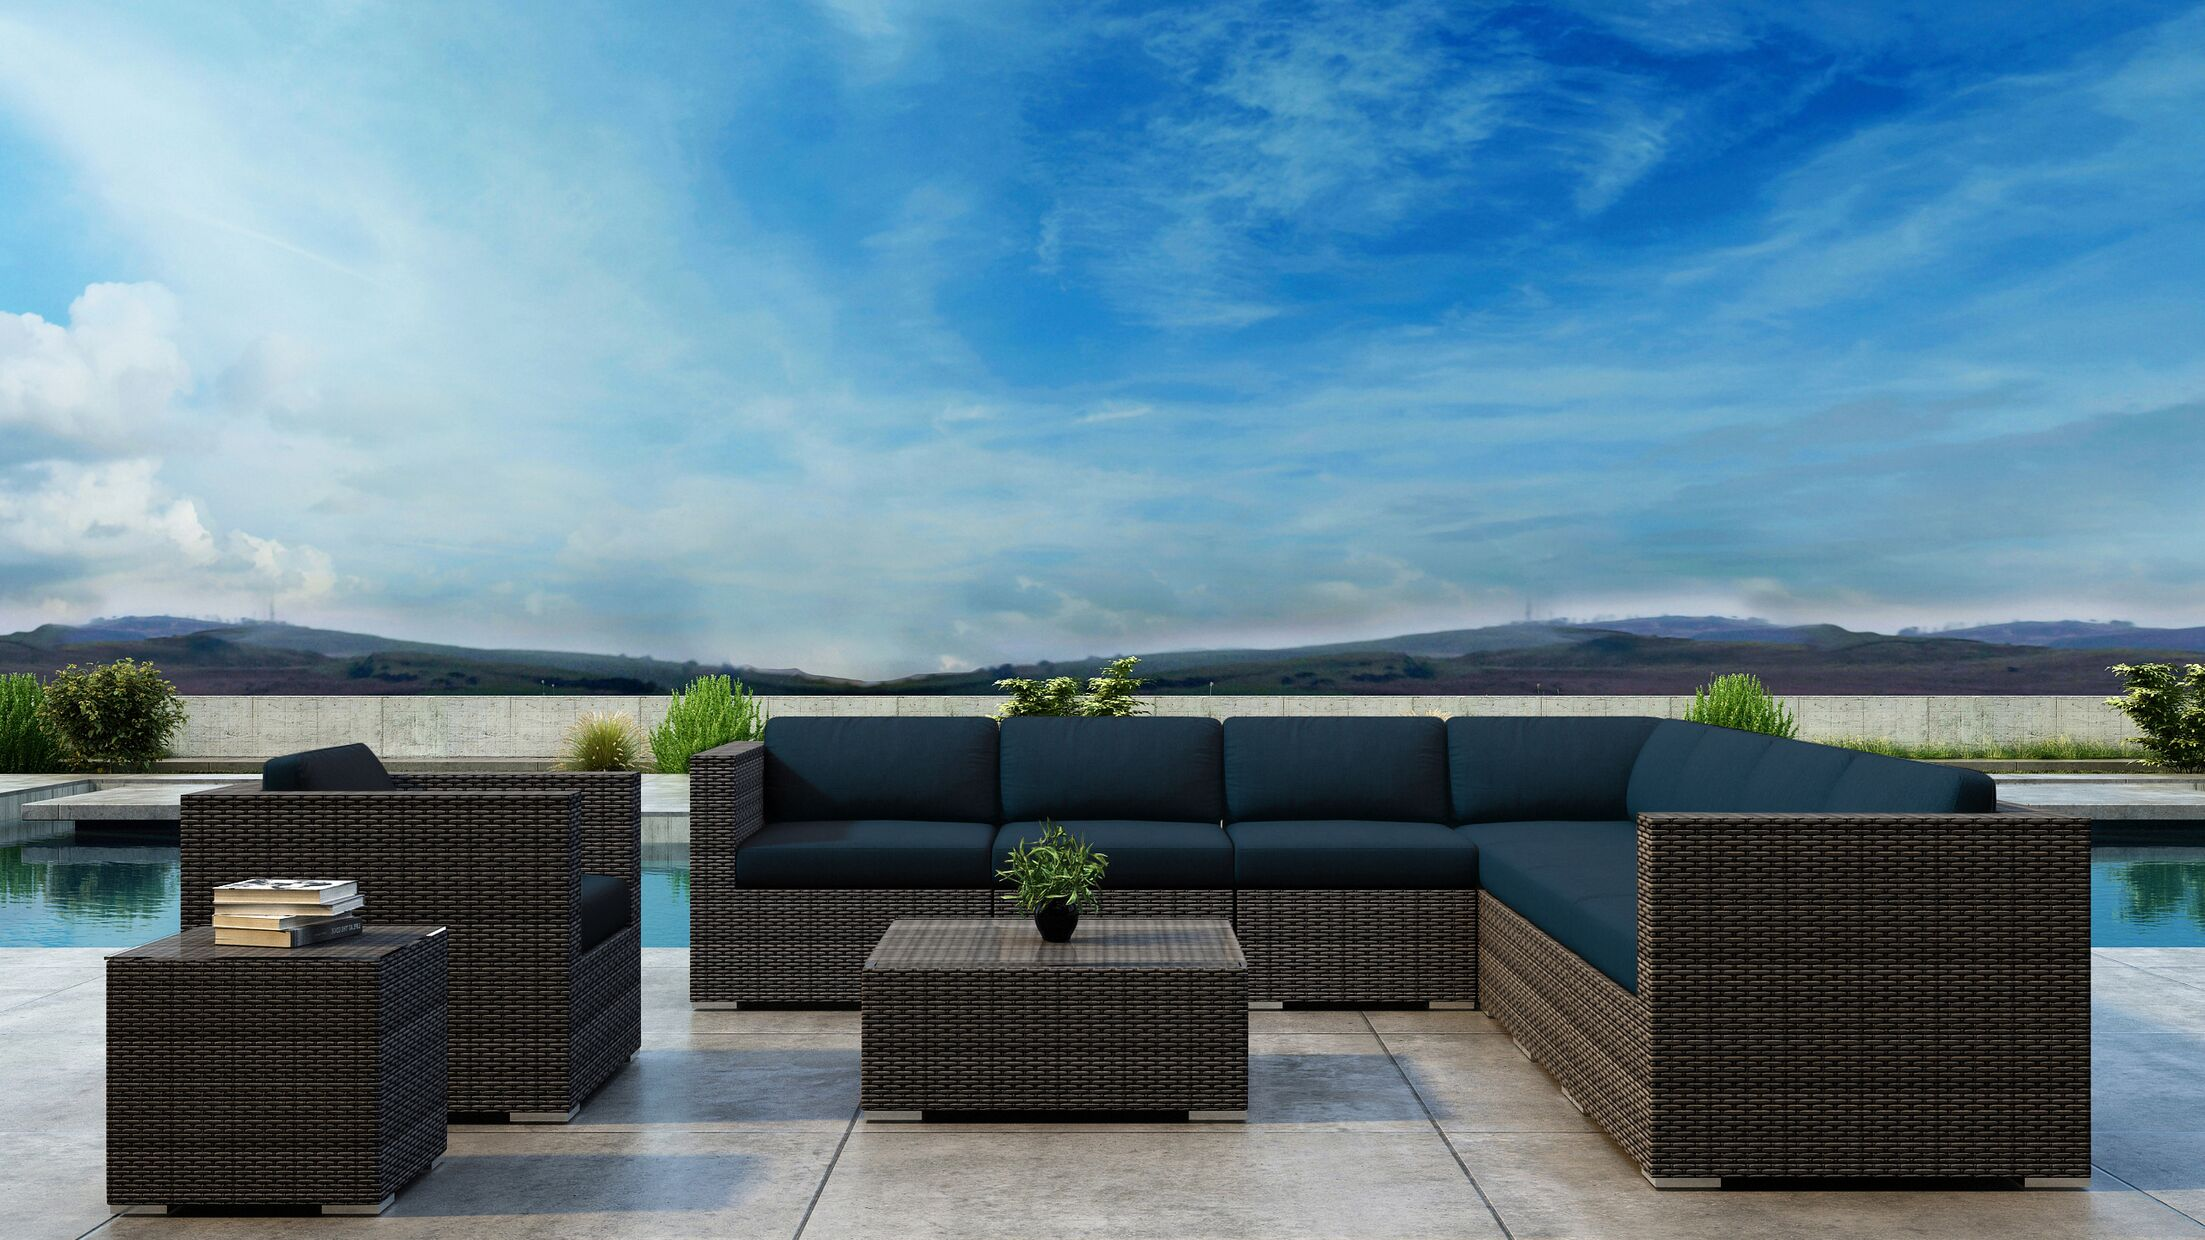 Gilleland 10 Piece Sectional Set with Sunbrella Cushion Cushion Color: Spectrum Indigo